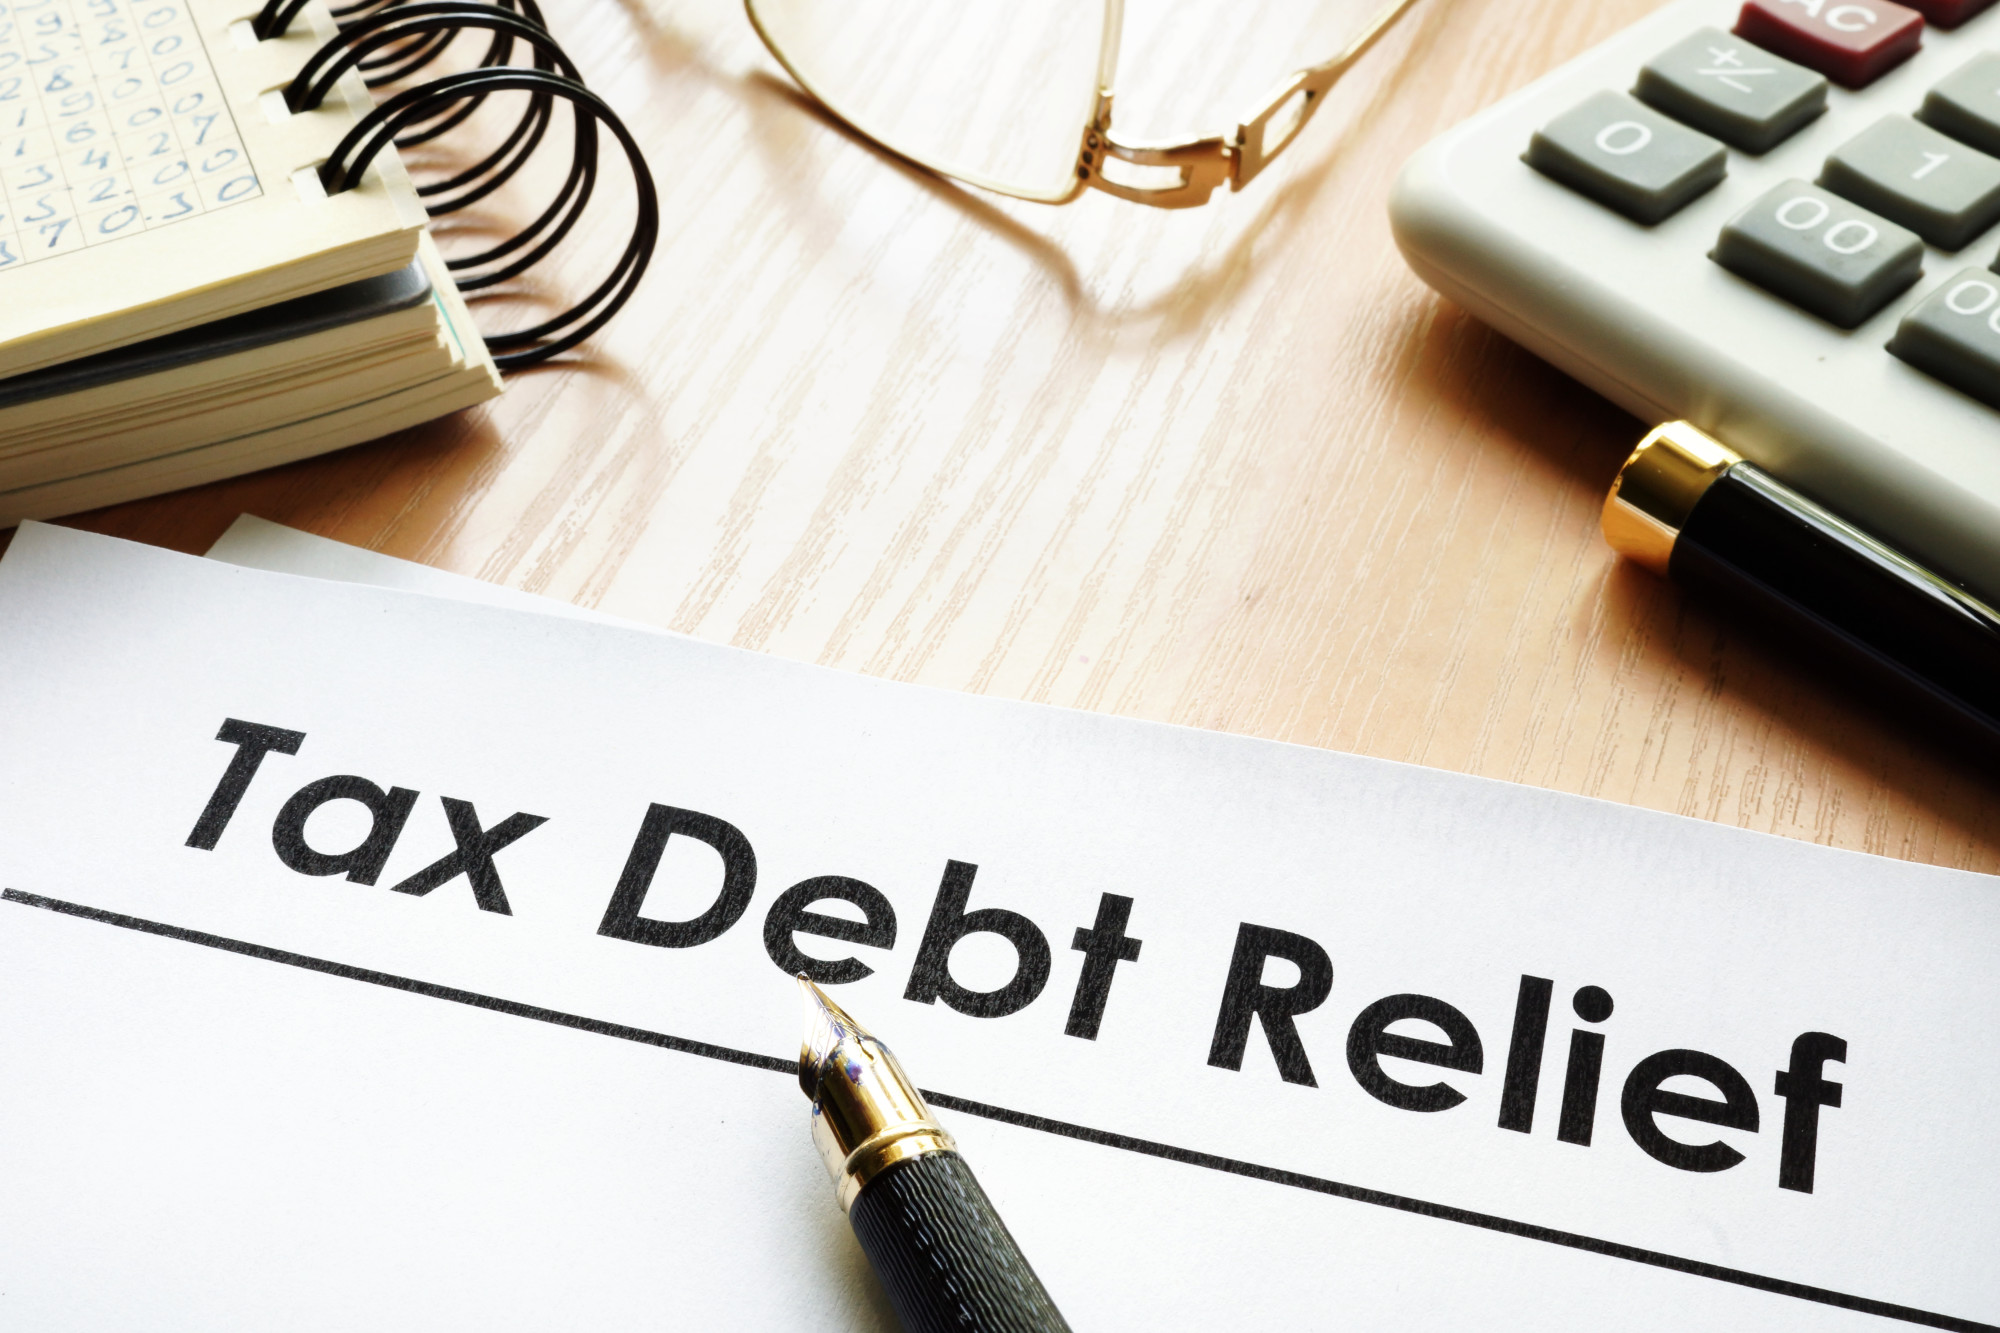 tax debt relief image